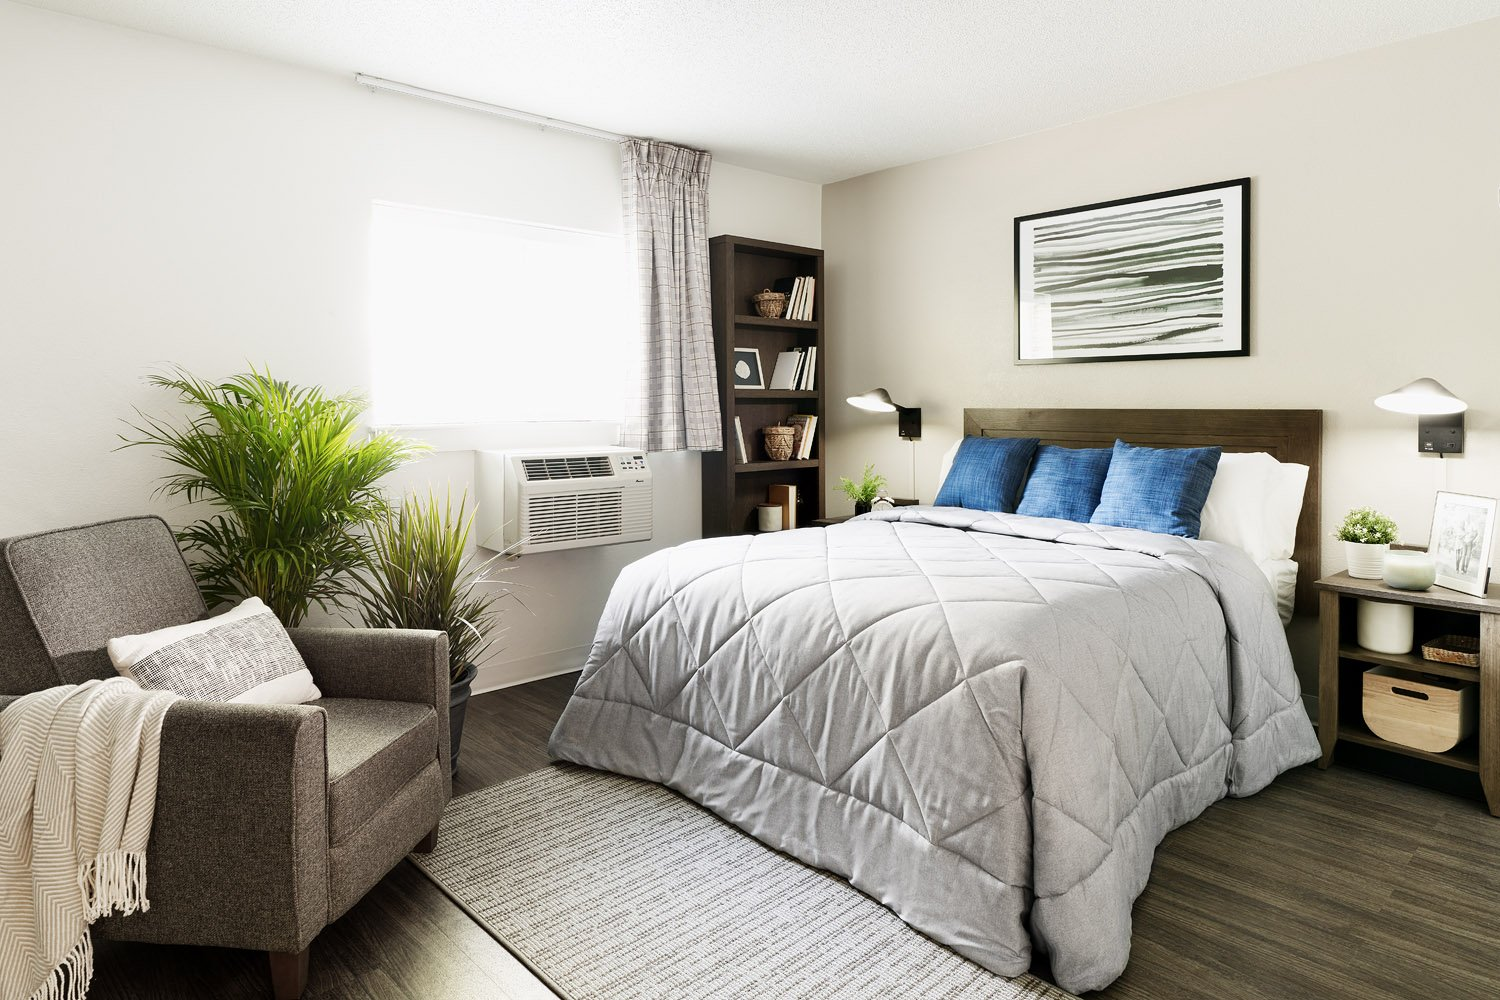 InTown Suites Extended Stay Nashville TN - Bell Road